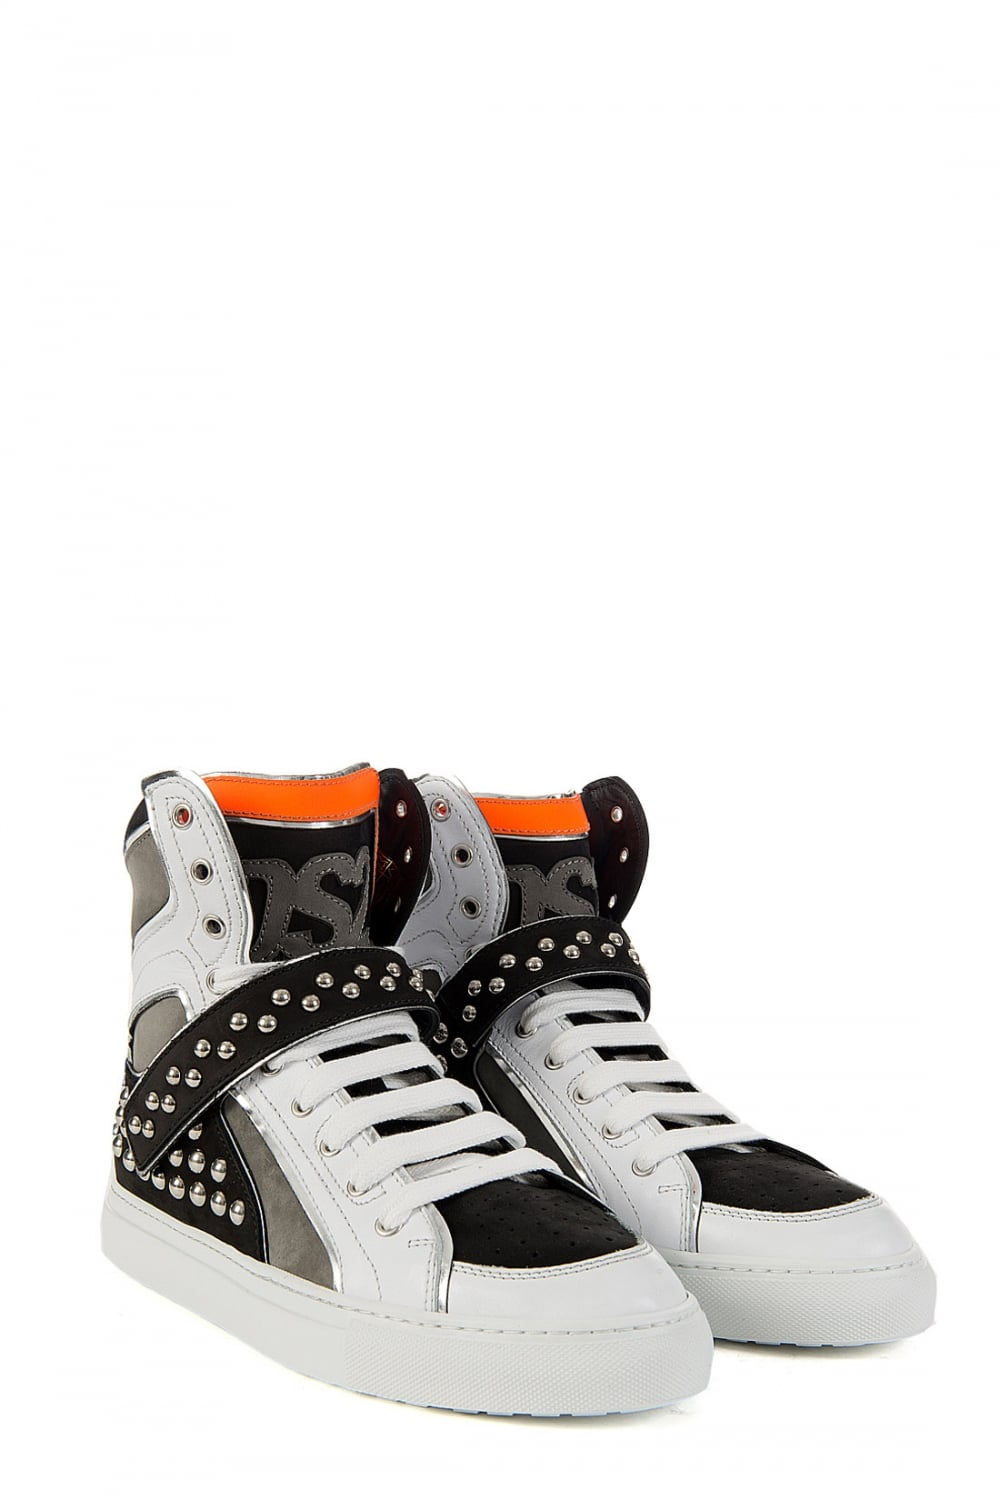 White Stud Sneaker Clothing Top Dsquared2 High From Dsquared 8yvnOP0wNm